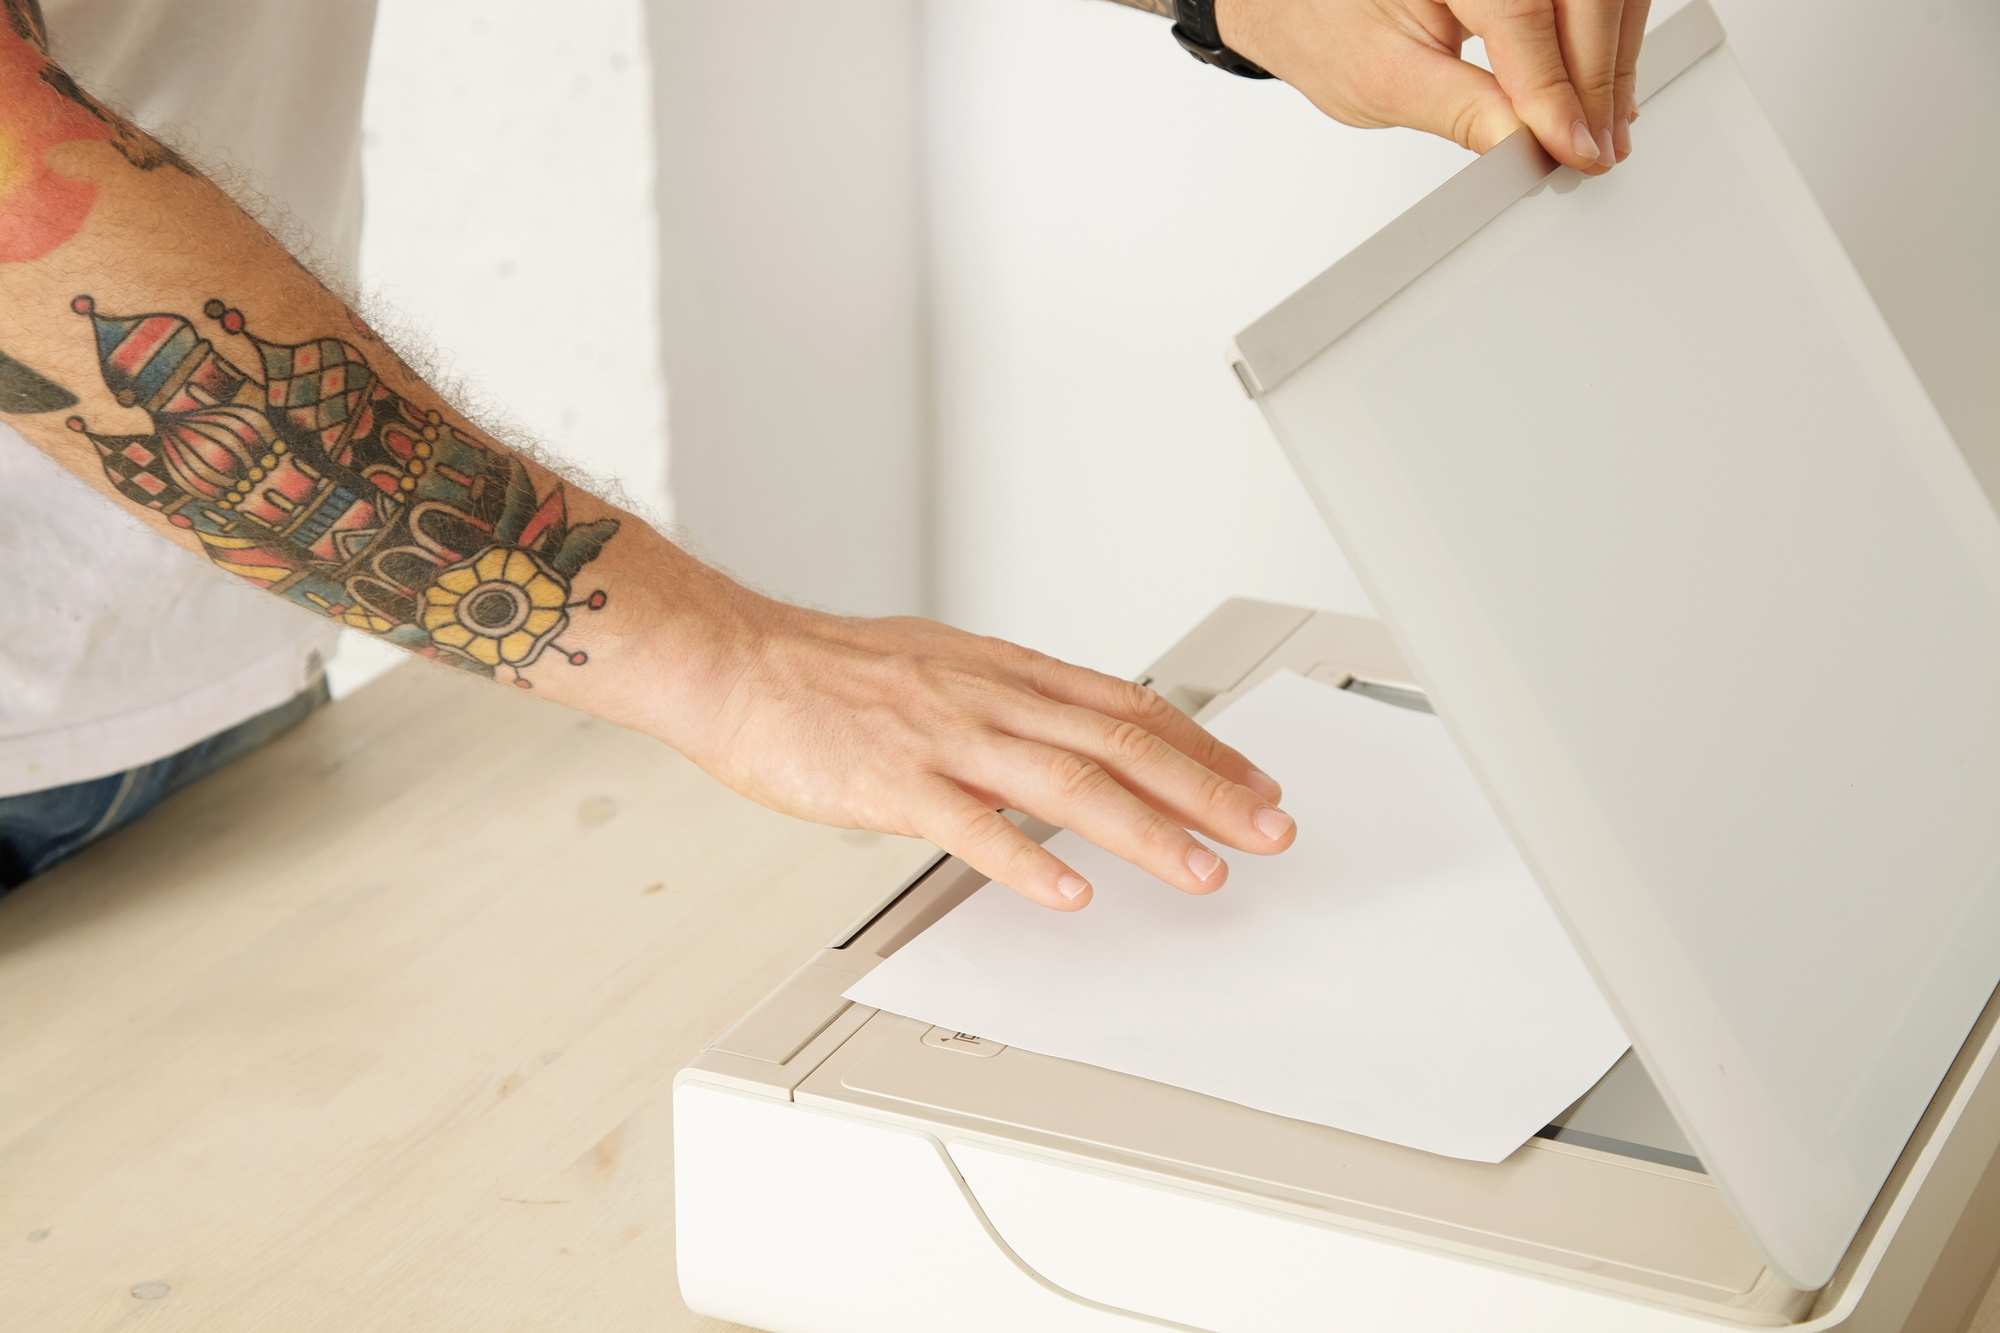 Tattooed arm using printer to scan documents